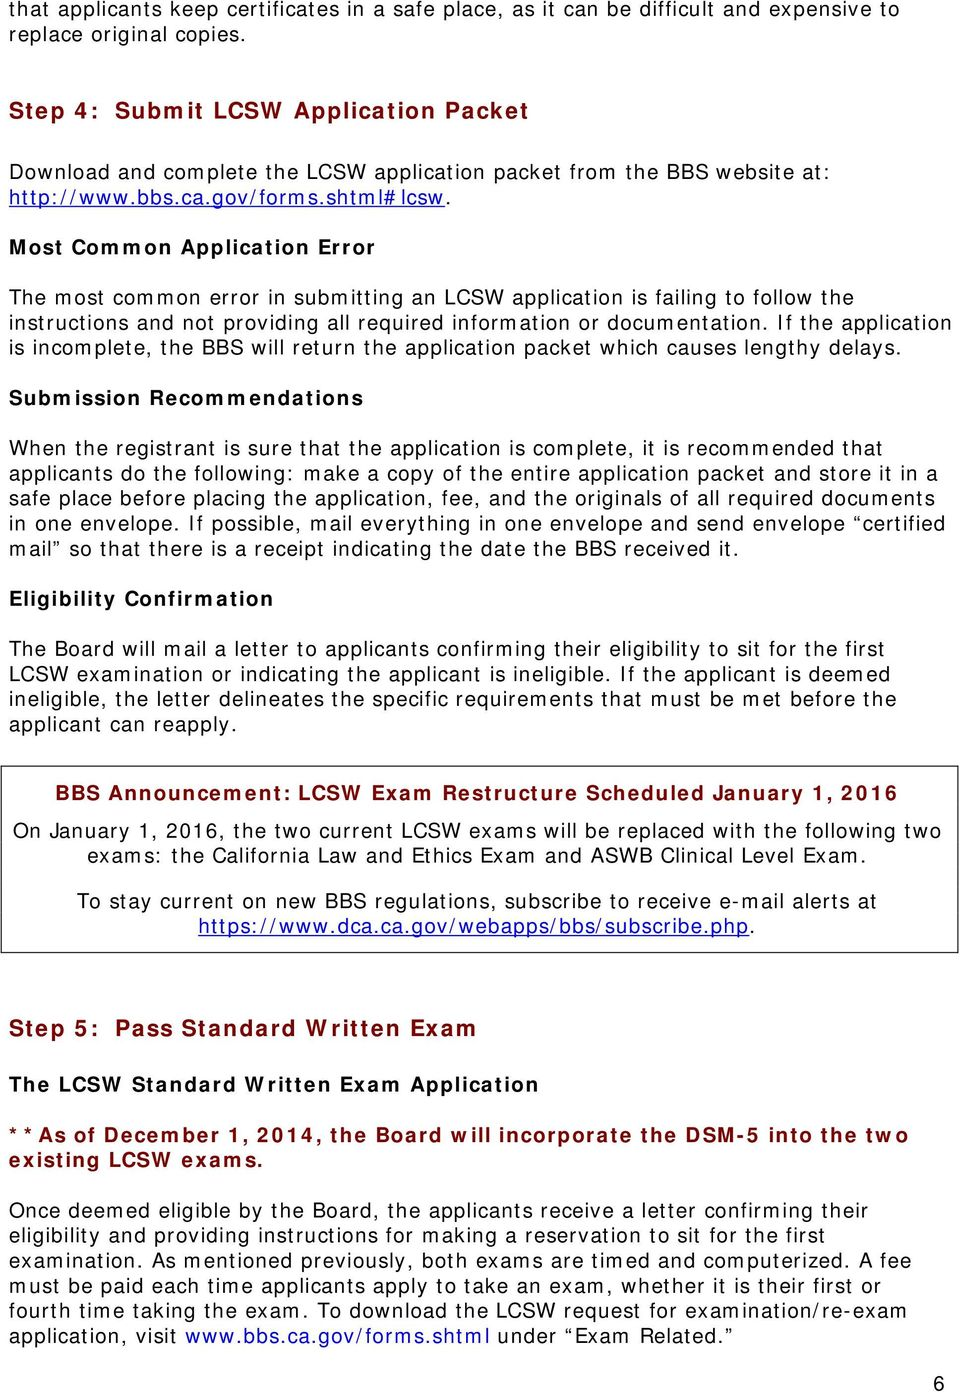 Most Common Application Error The most common error in submitting an LCSW application is failing to follow the instructions and not providing all required information or documentation.